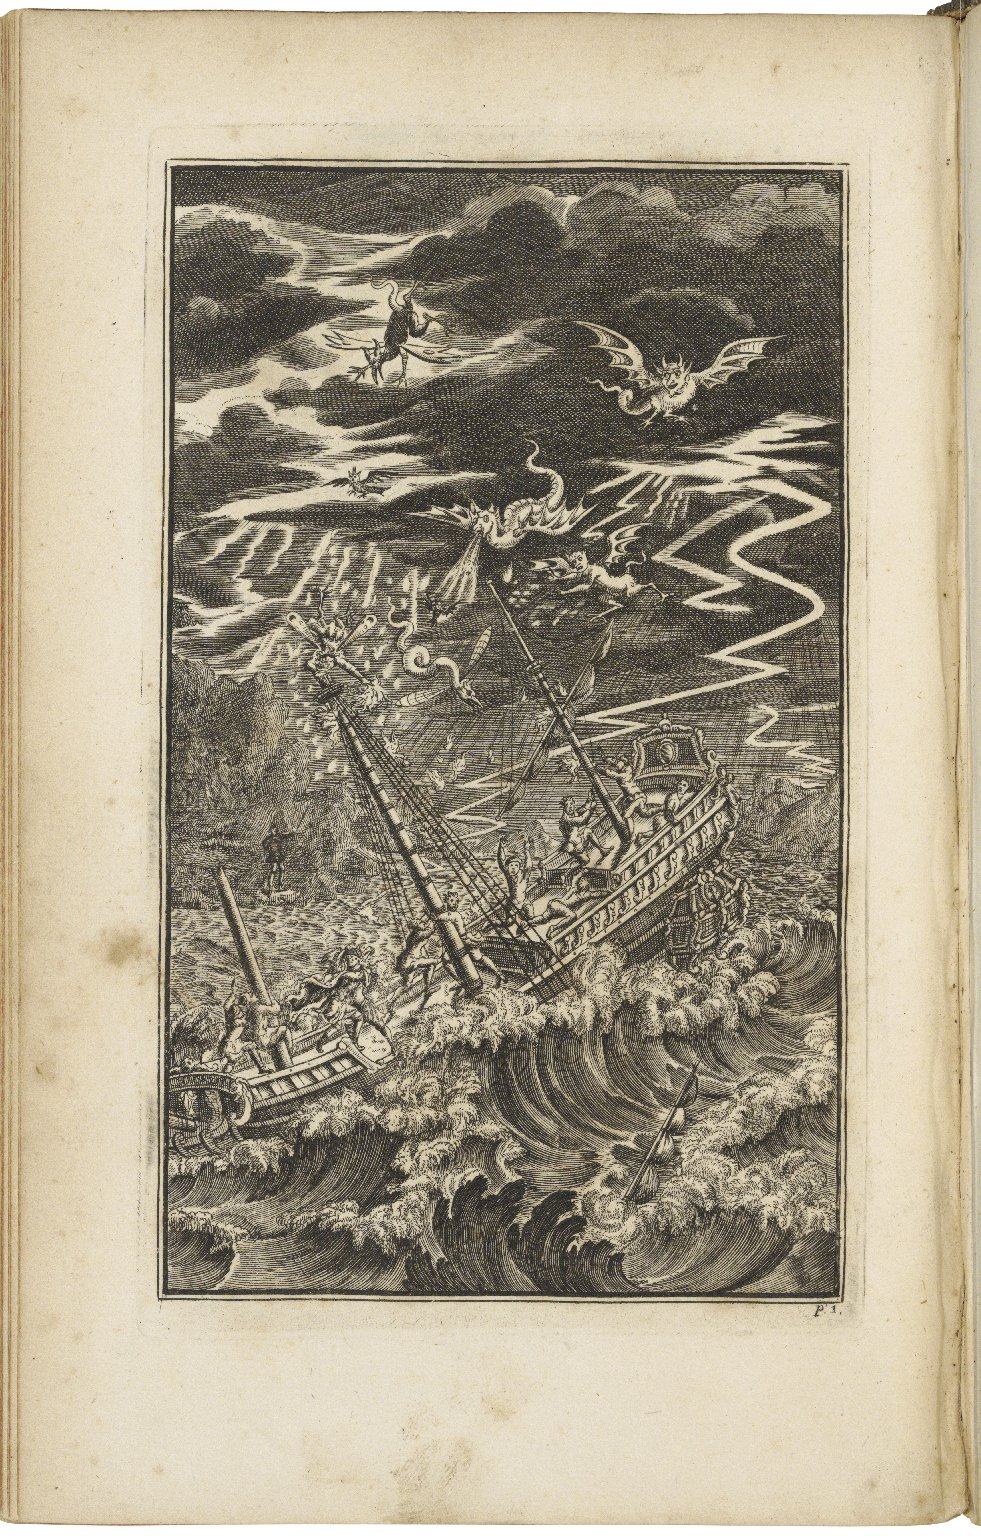 Early 18th-century illustration of shipwreck in The Tempest